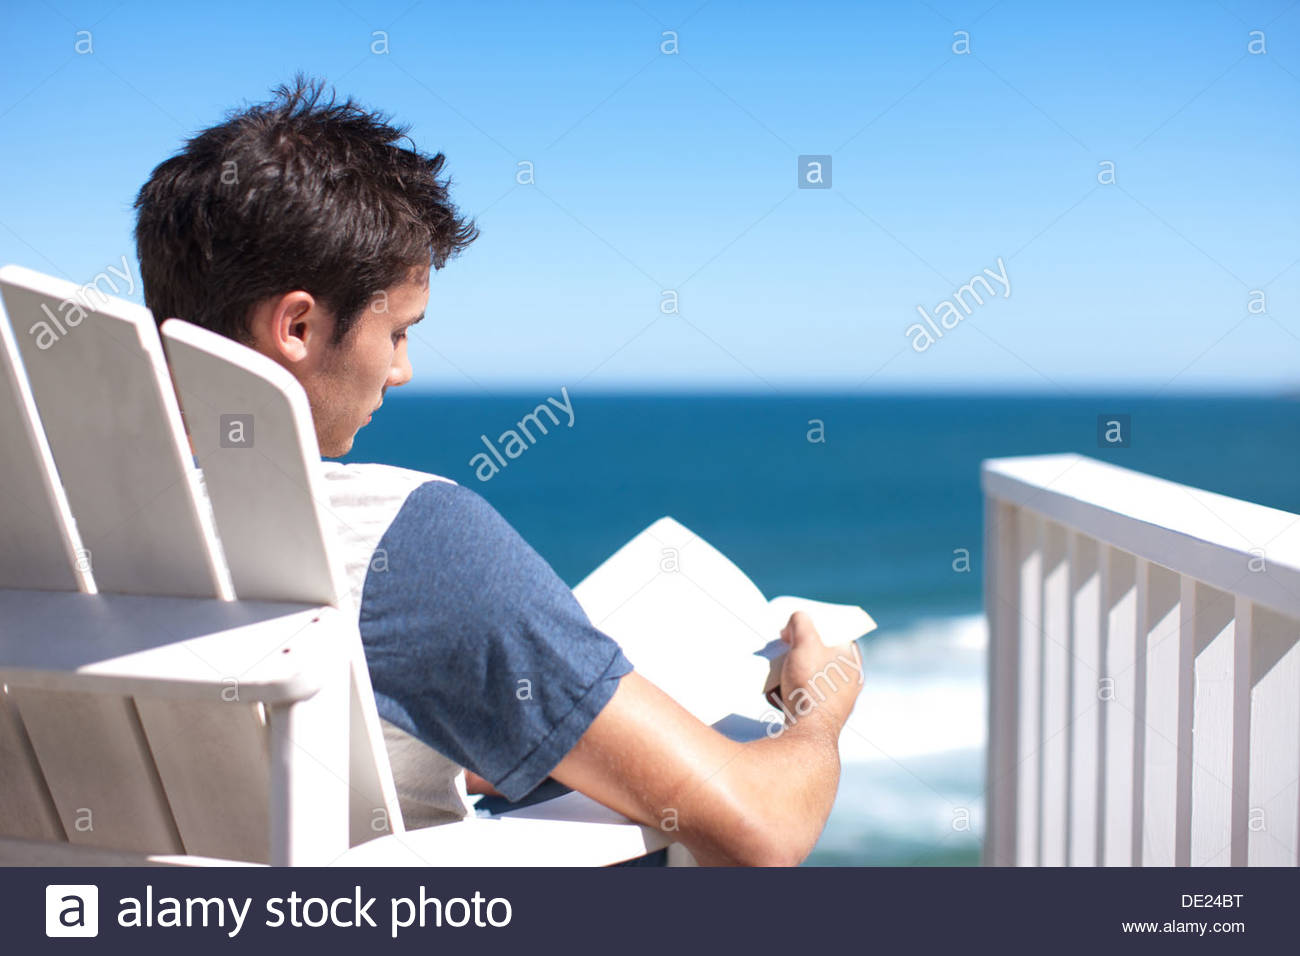 Man reading book in deck chair overlooking ocean Photo Stock